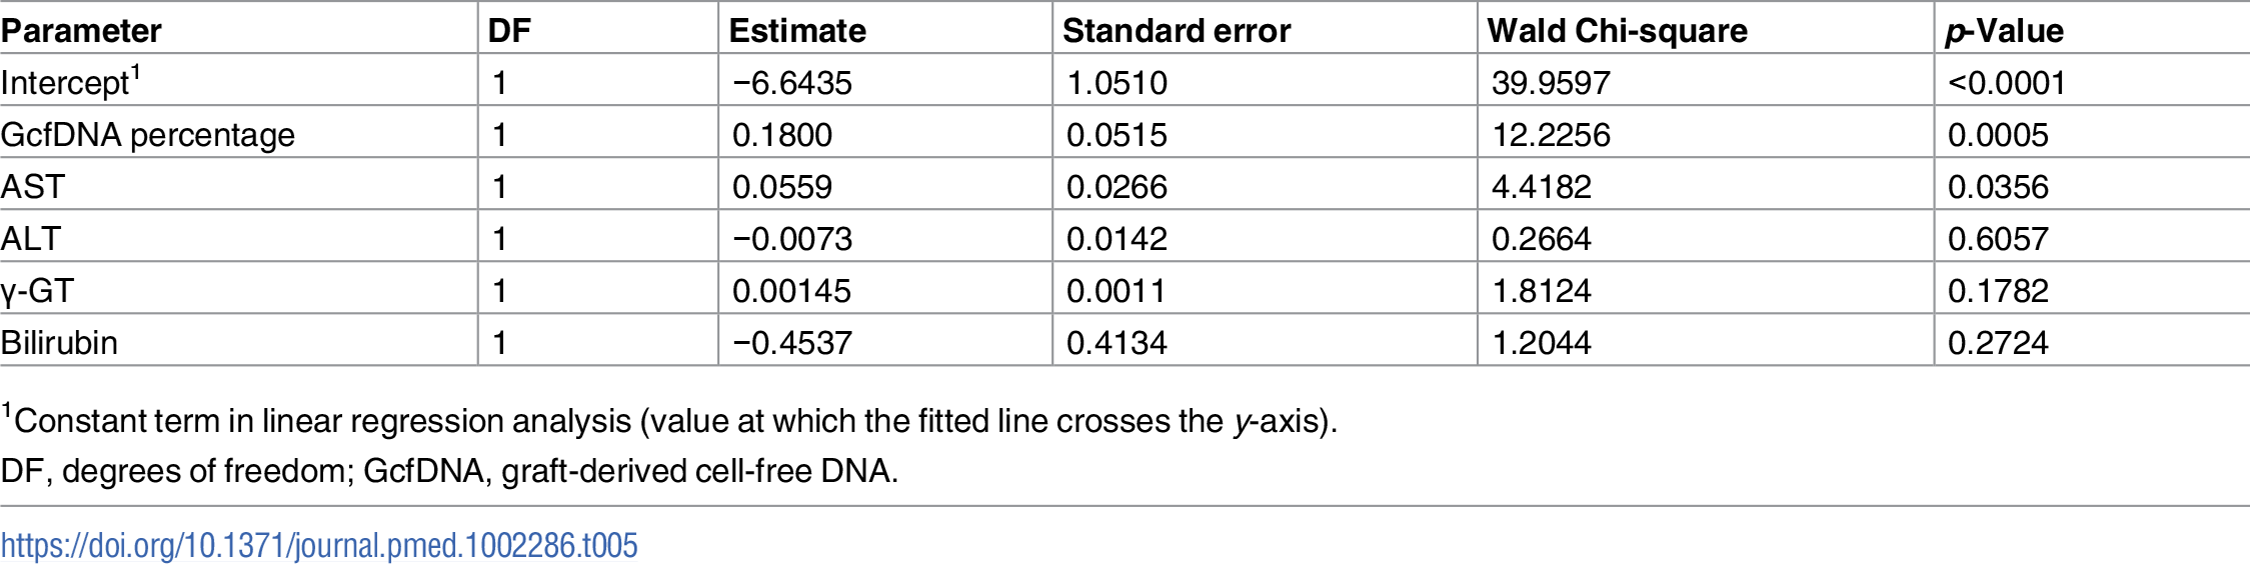 Multivariable logistic regression results for liver function tests and GcfDNA.